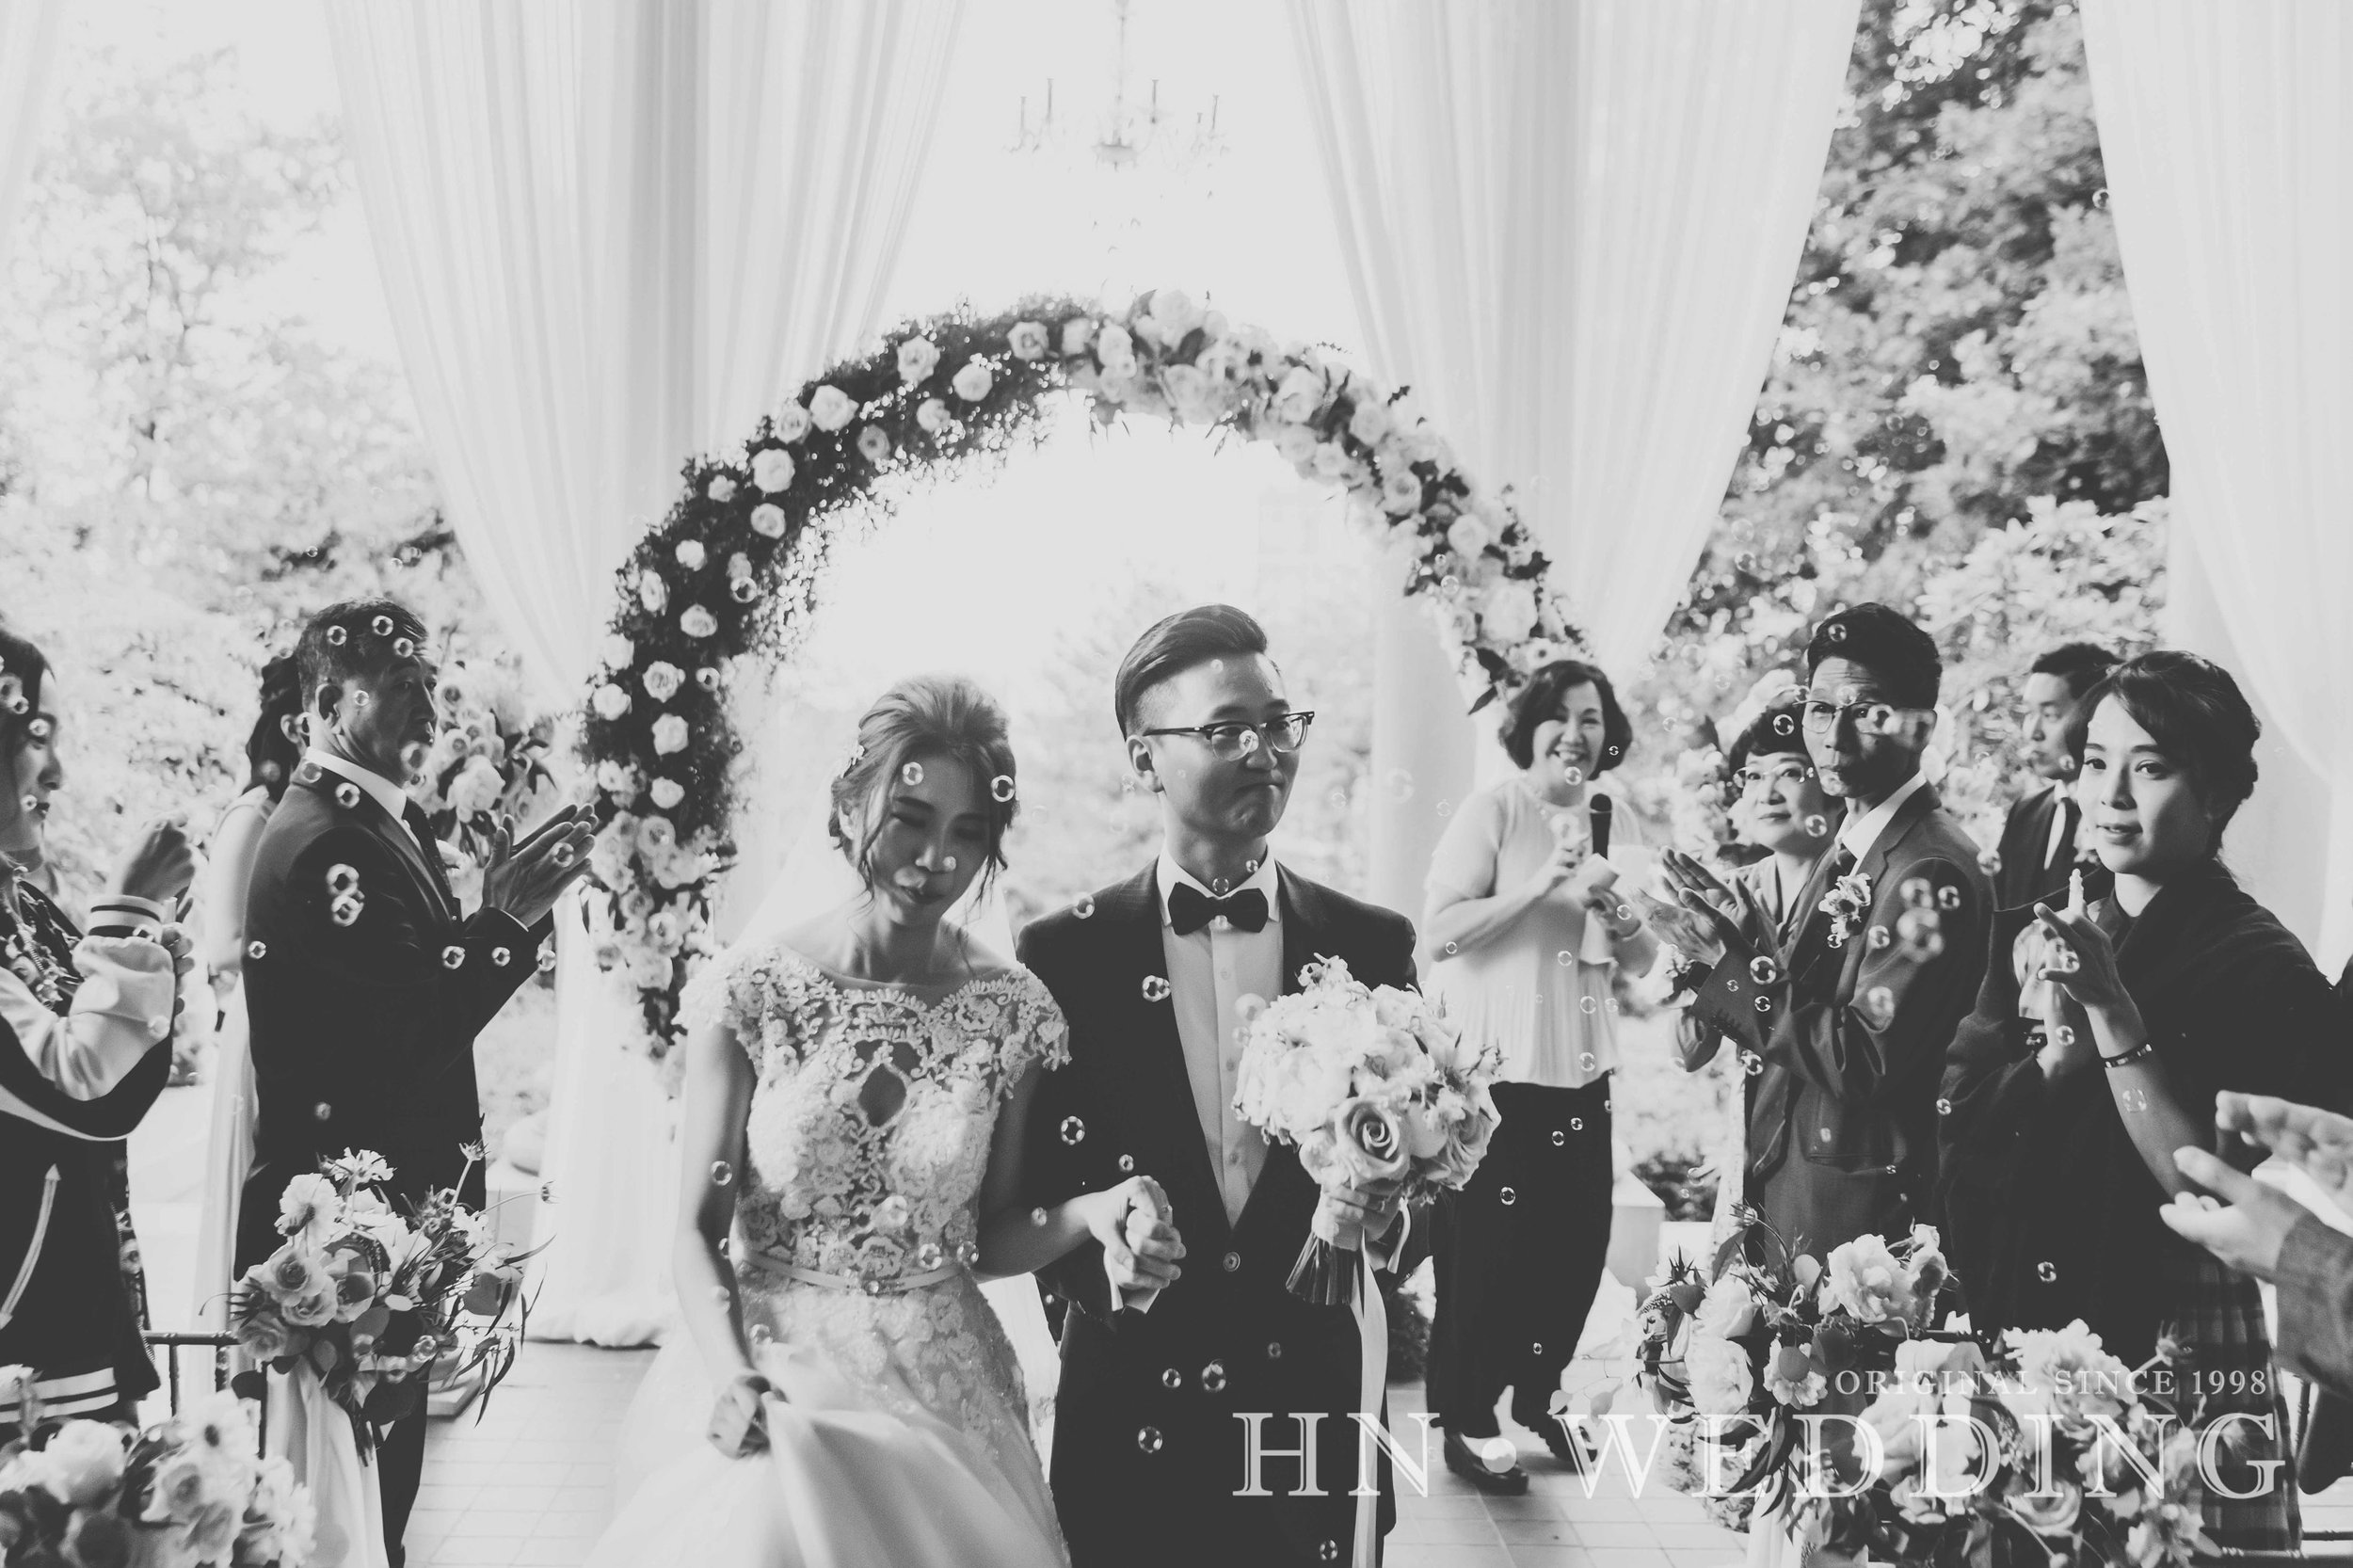 hnweddingweddingday10192018-2-12.jpg